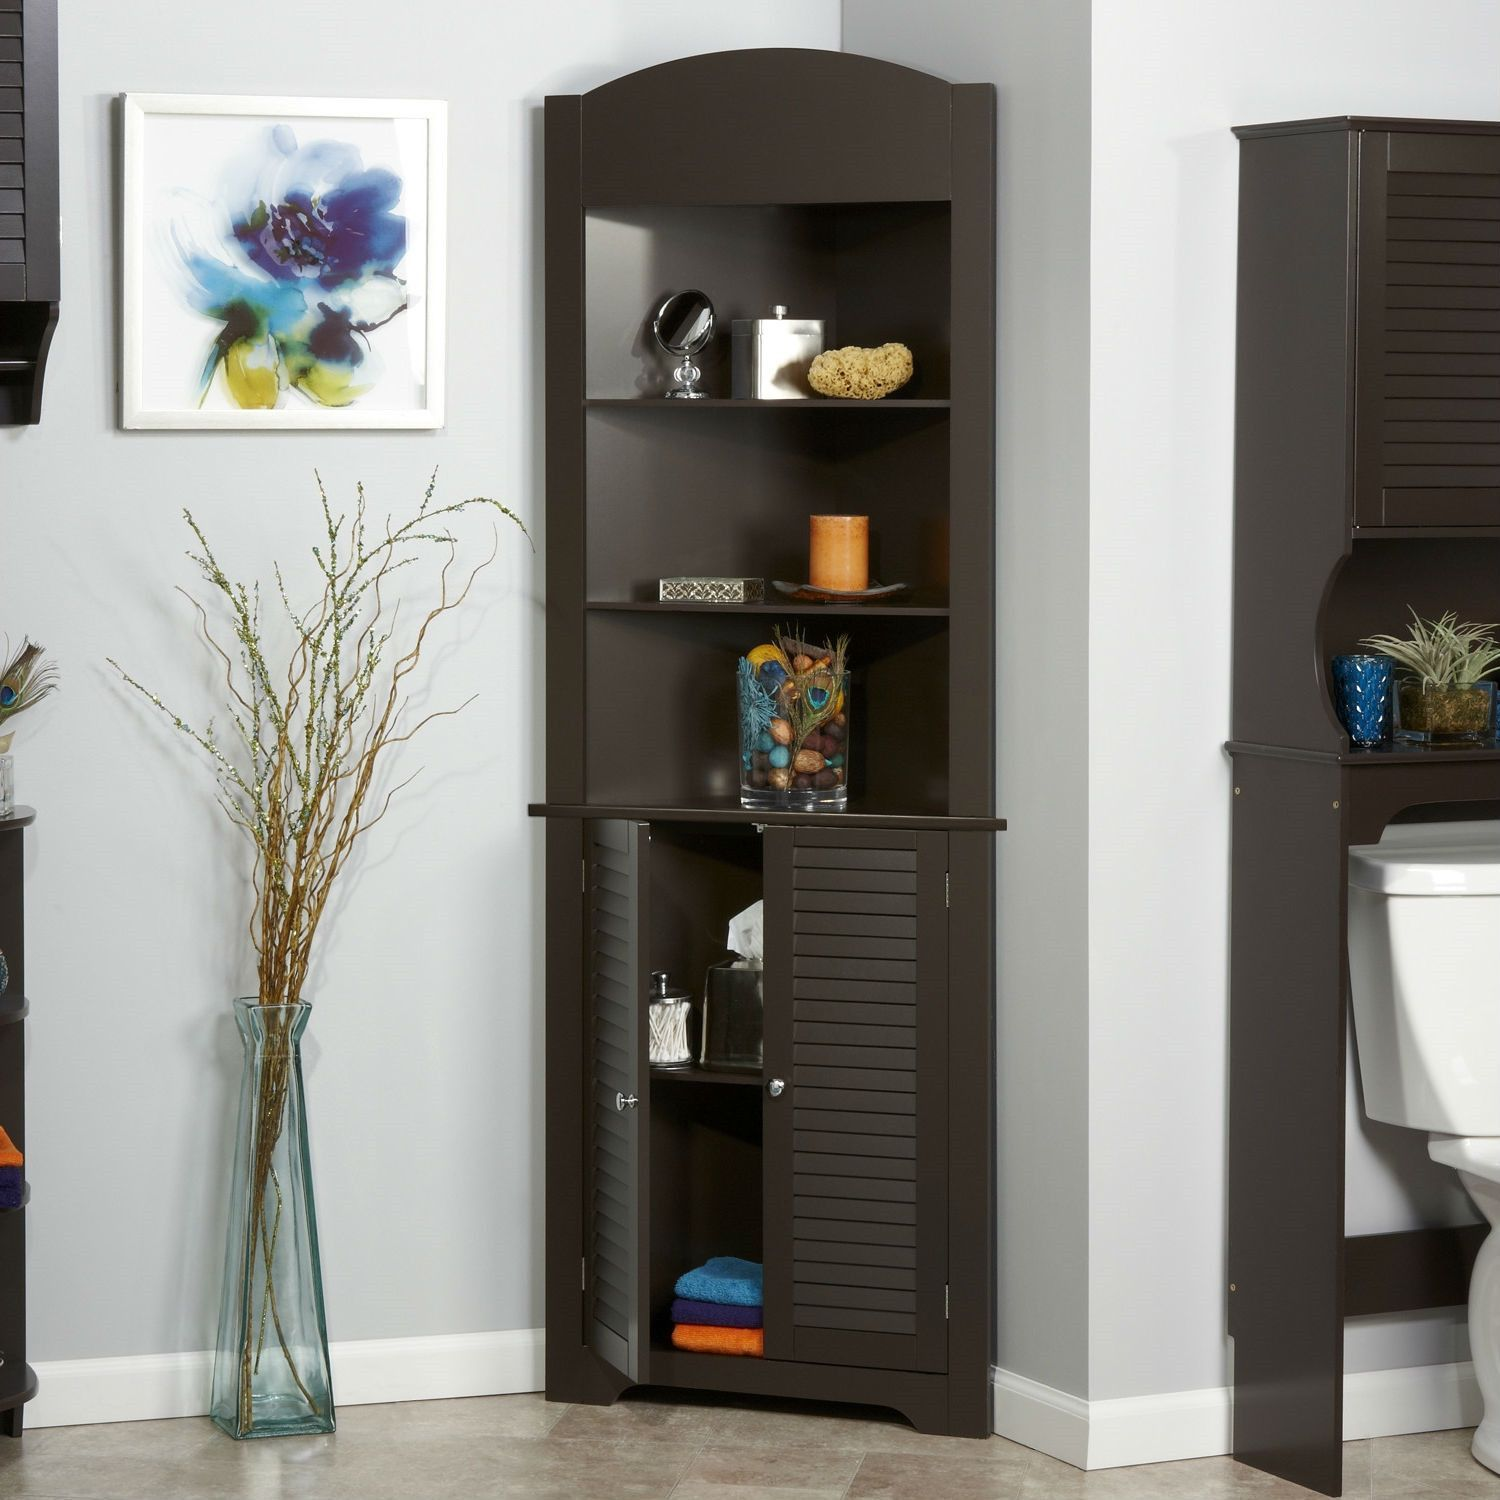 linen storage corner bathroom organization size closet stor bins white cabinet full of home